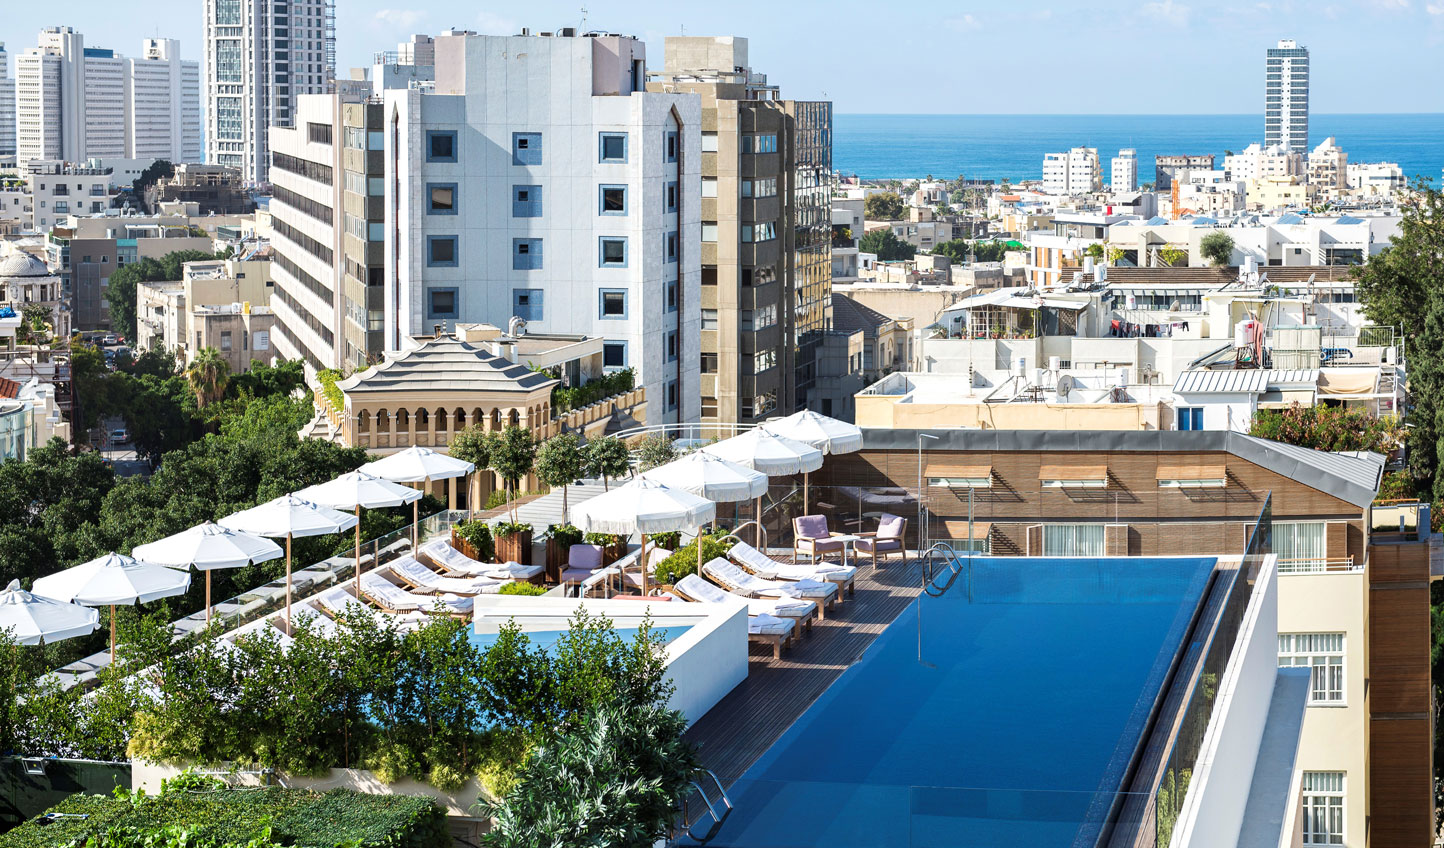 Relax in the Mediterranean sunshine at The Norman's rooftop infinity pool